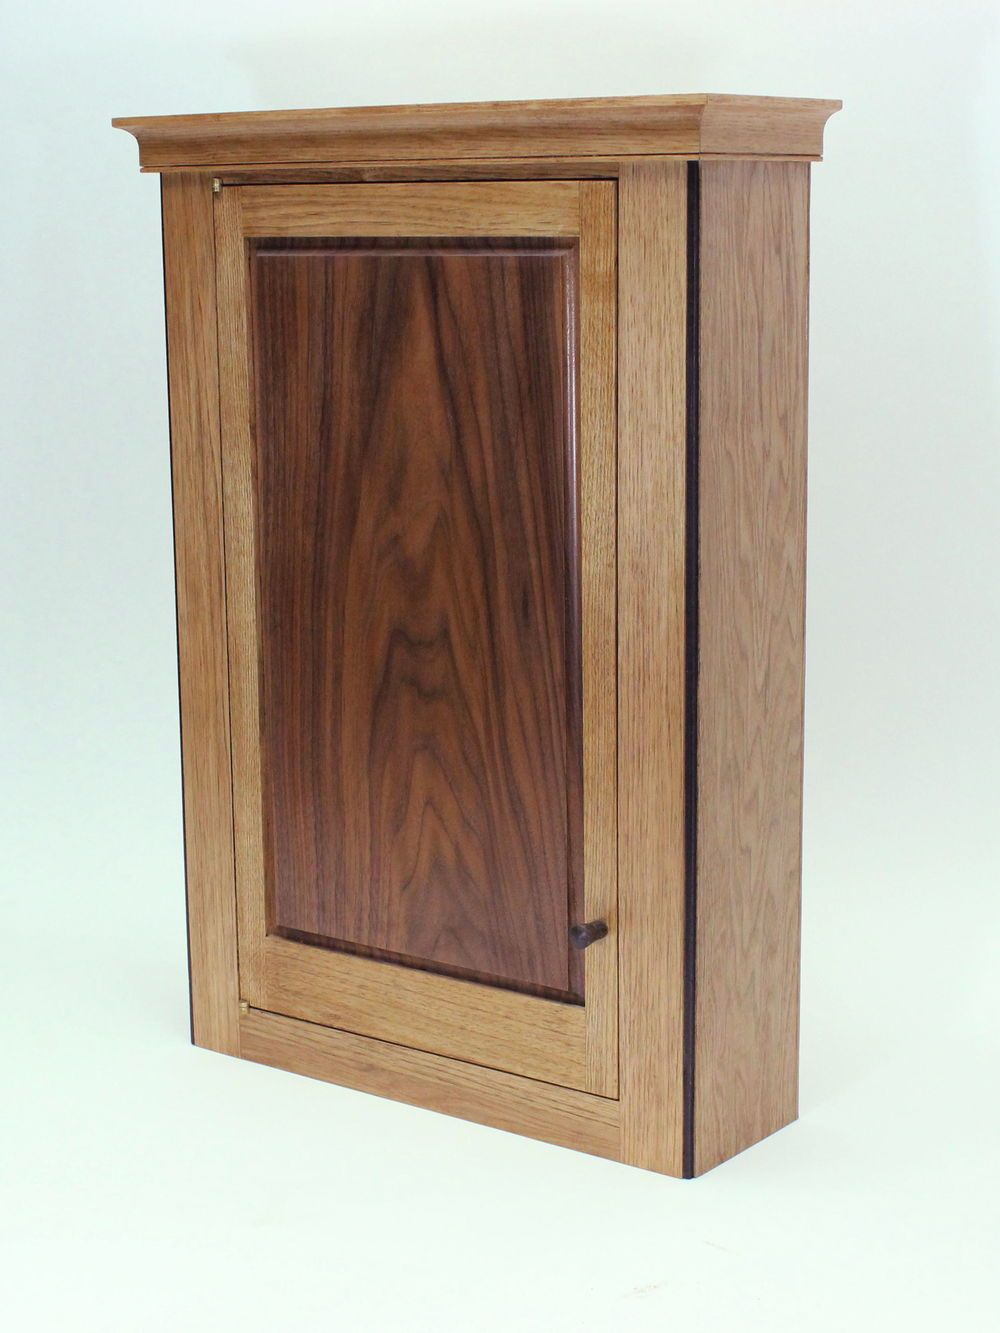 Top Cabinets Part 1 Small Wall Hung Cabinets Liquor